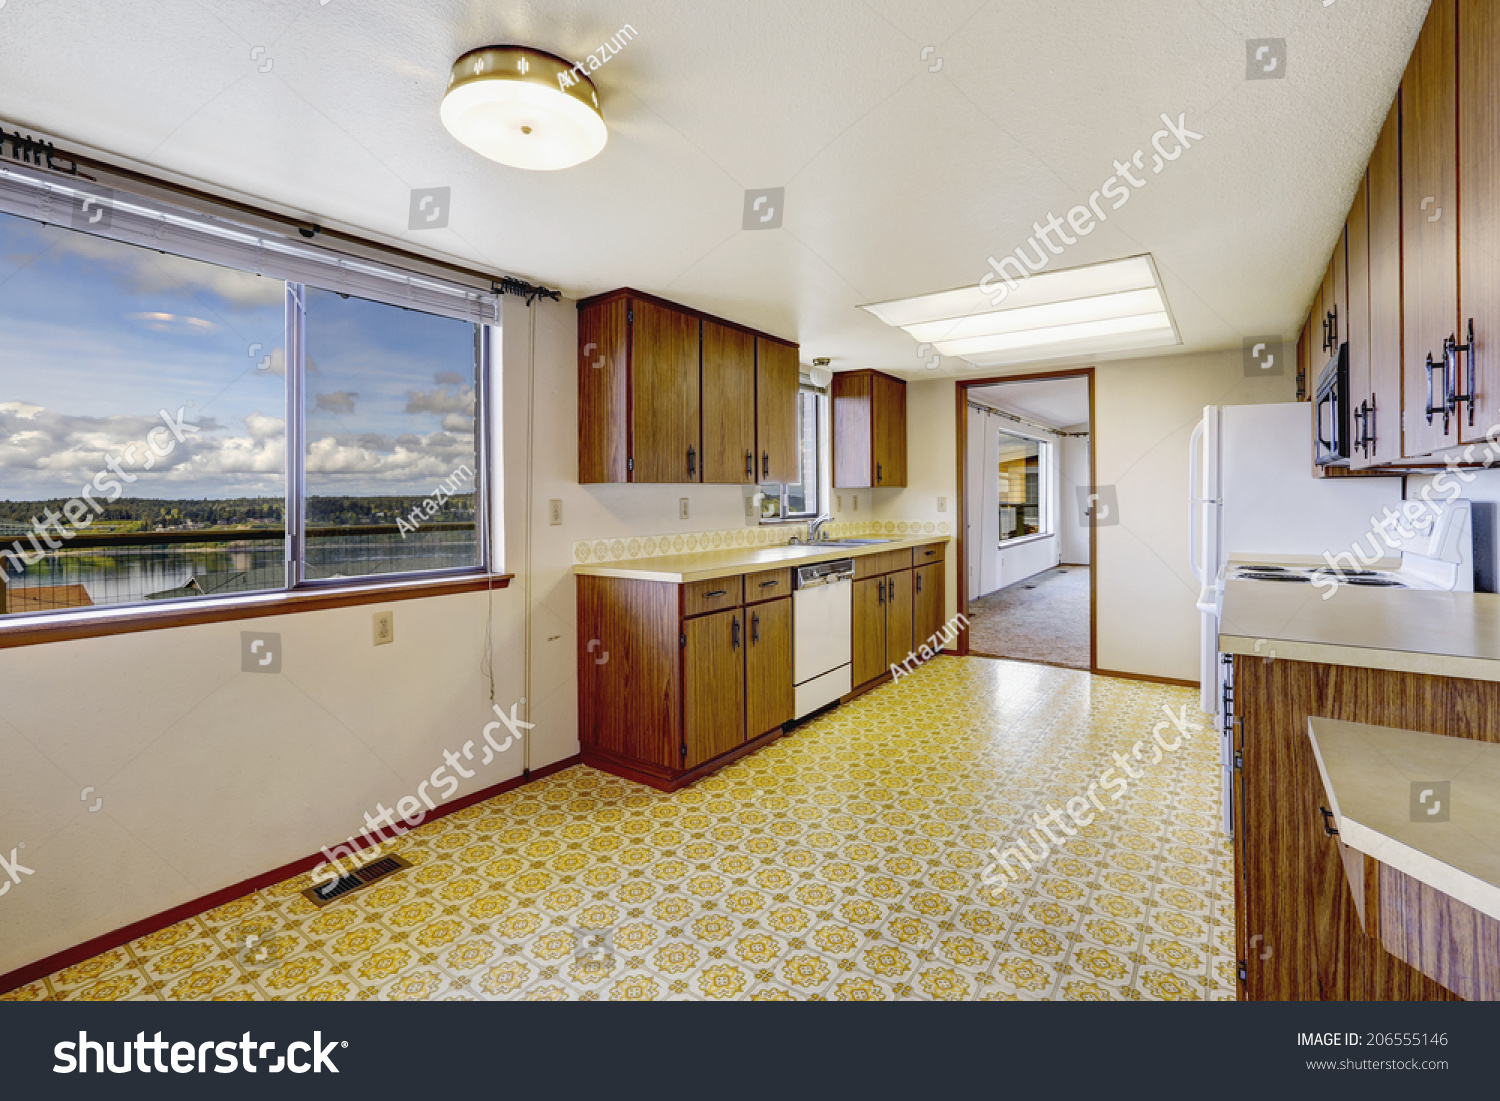 Linoleum Floor Kitchen Empty Kitchen Room Linoleum Floor Old Stock Photo 206555146